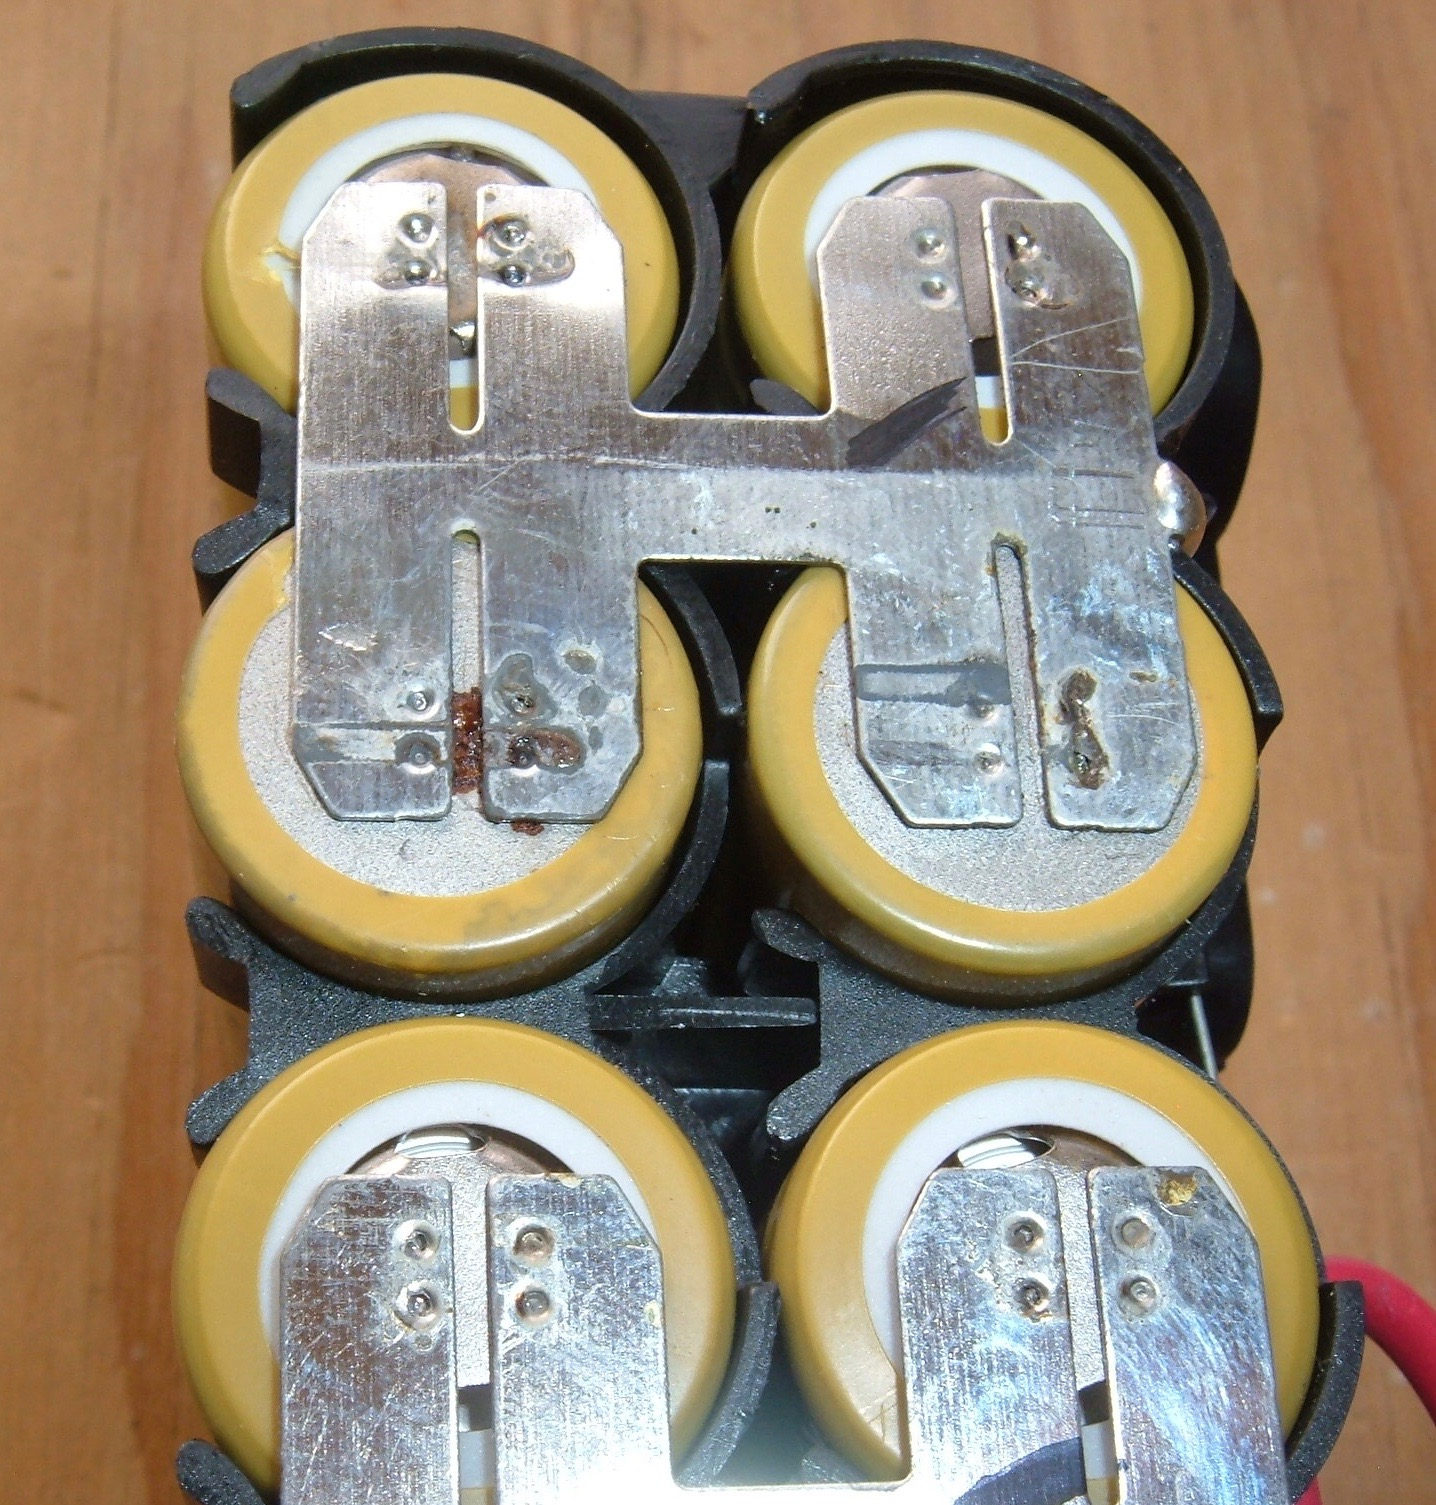 Syonyk's Project Blog: DeWalt 20V Max 3 0Ah Battery Pack